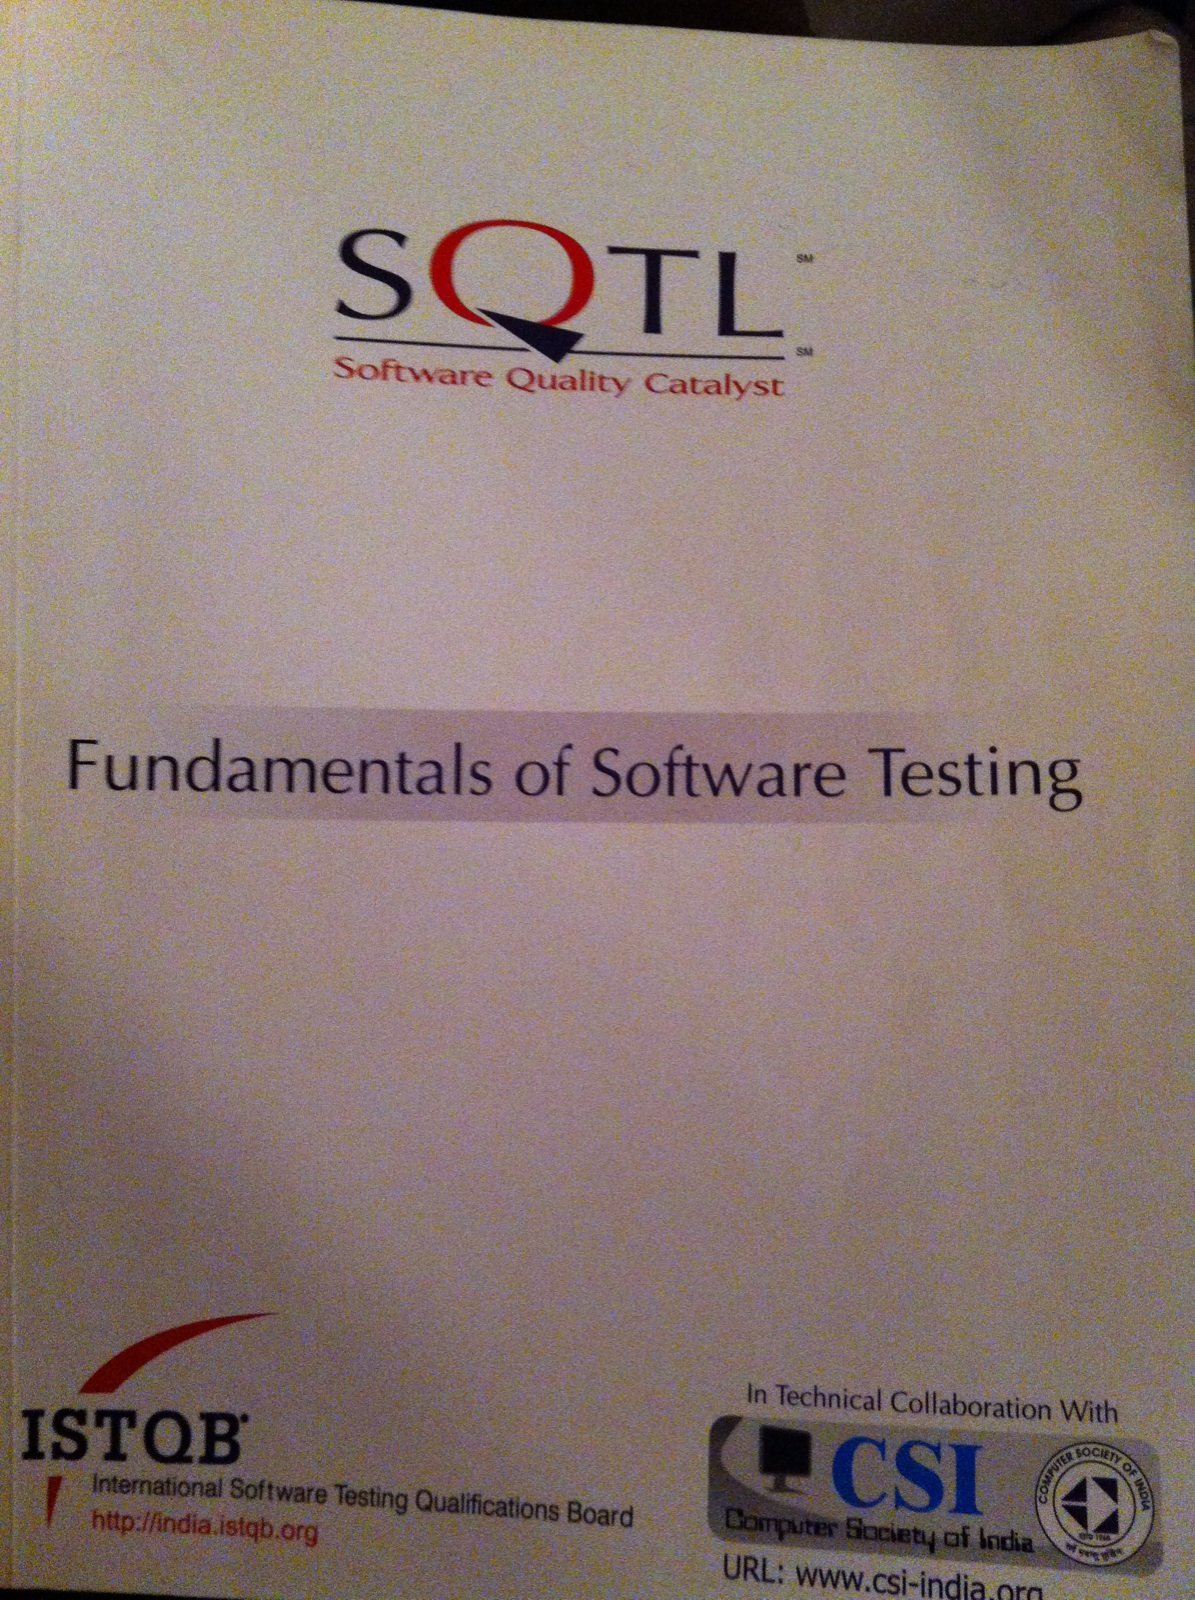 Fundamentals Of Software Testing Software Quality Catalyst Istqb International Software Testing Qualifications Board Csi Computer Society Of India Amazon Com Books